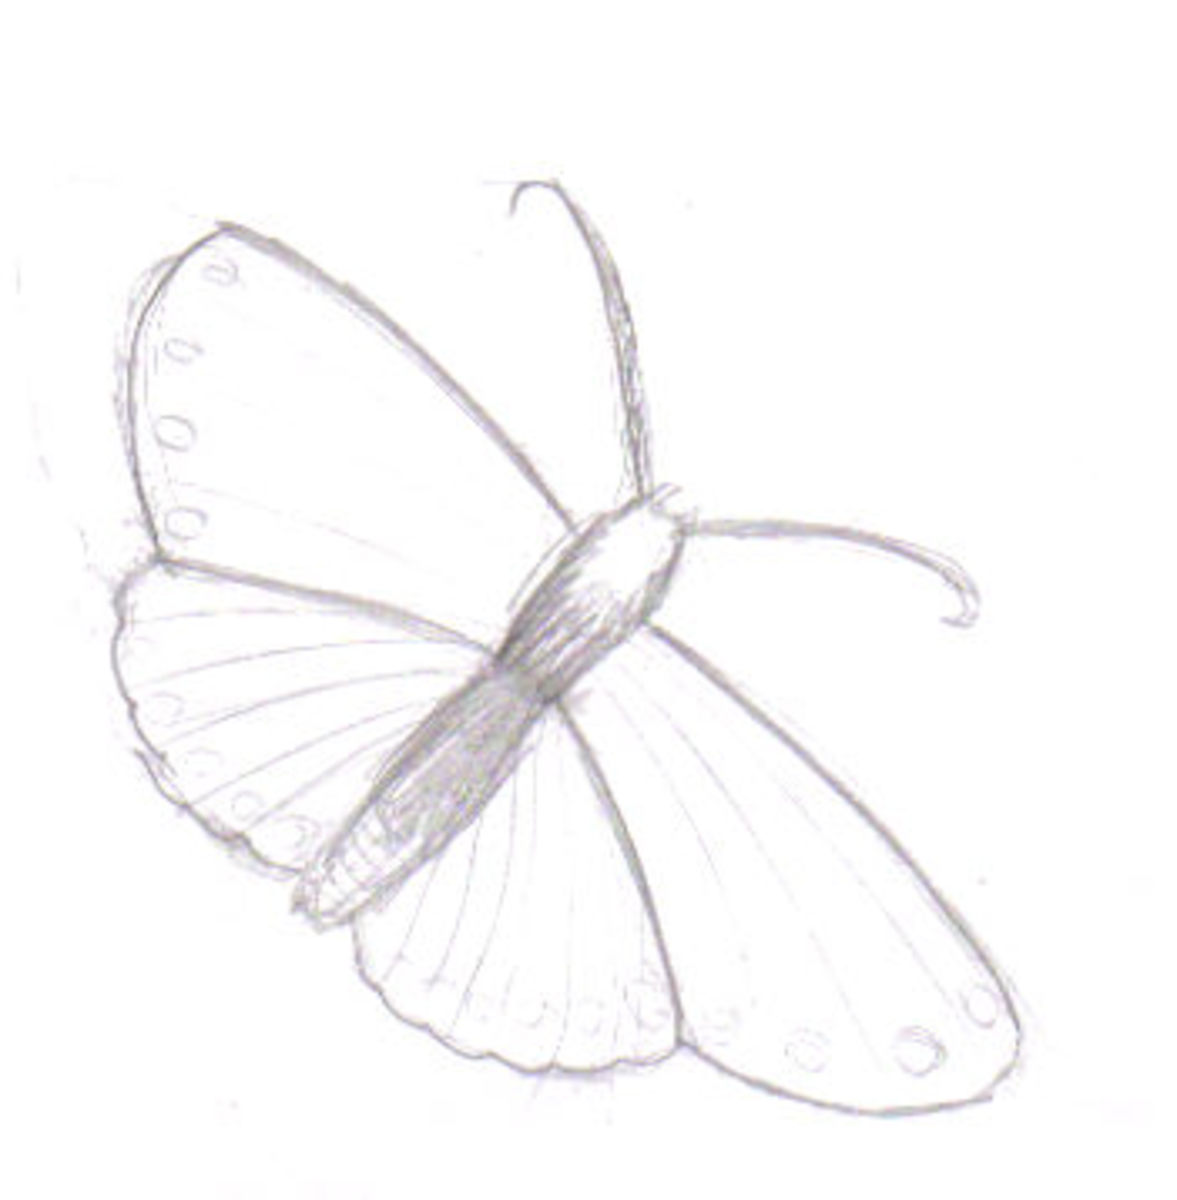 Drawing a butterfly.